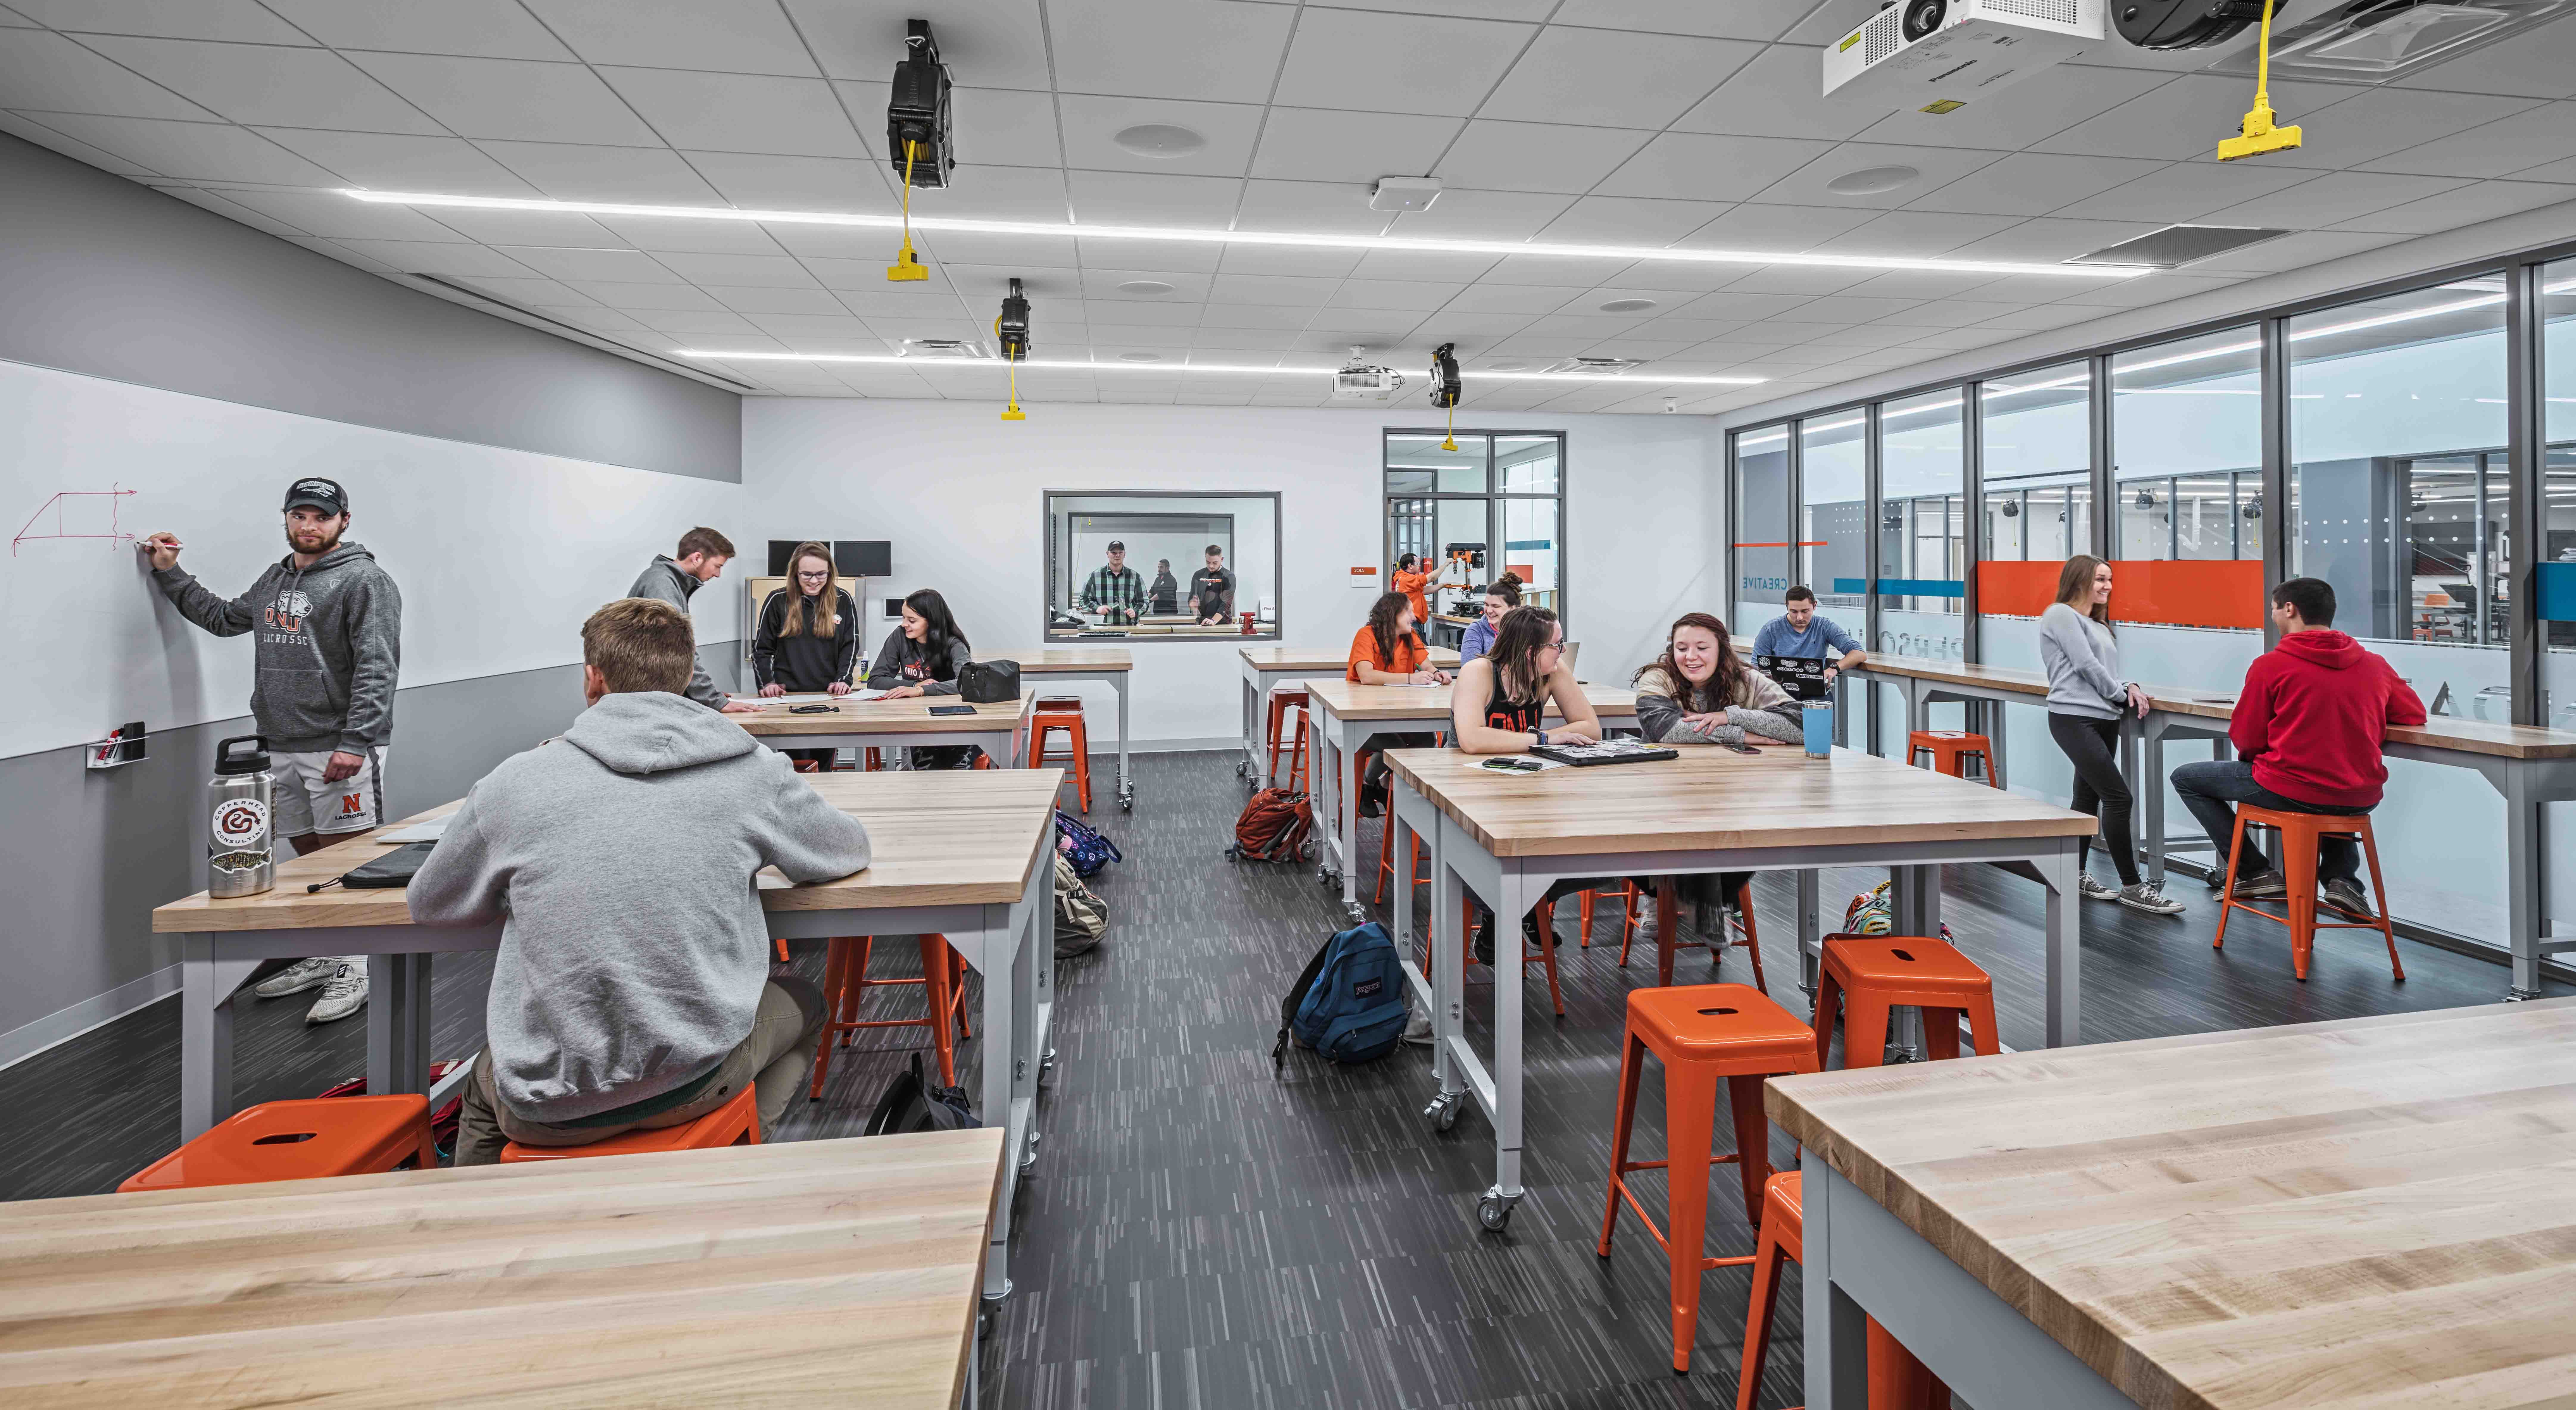 Students interacting in a classroom at Ohio Northern University